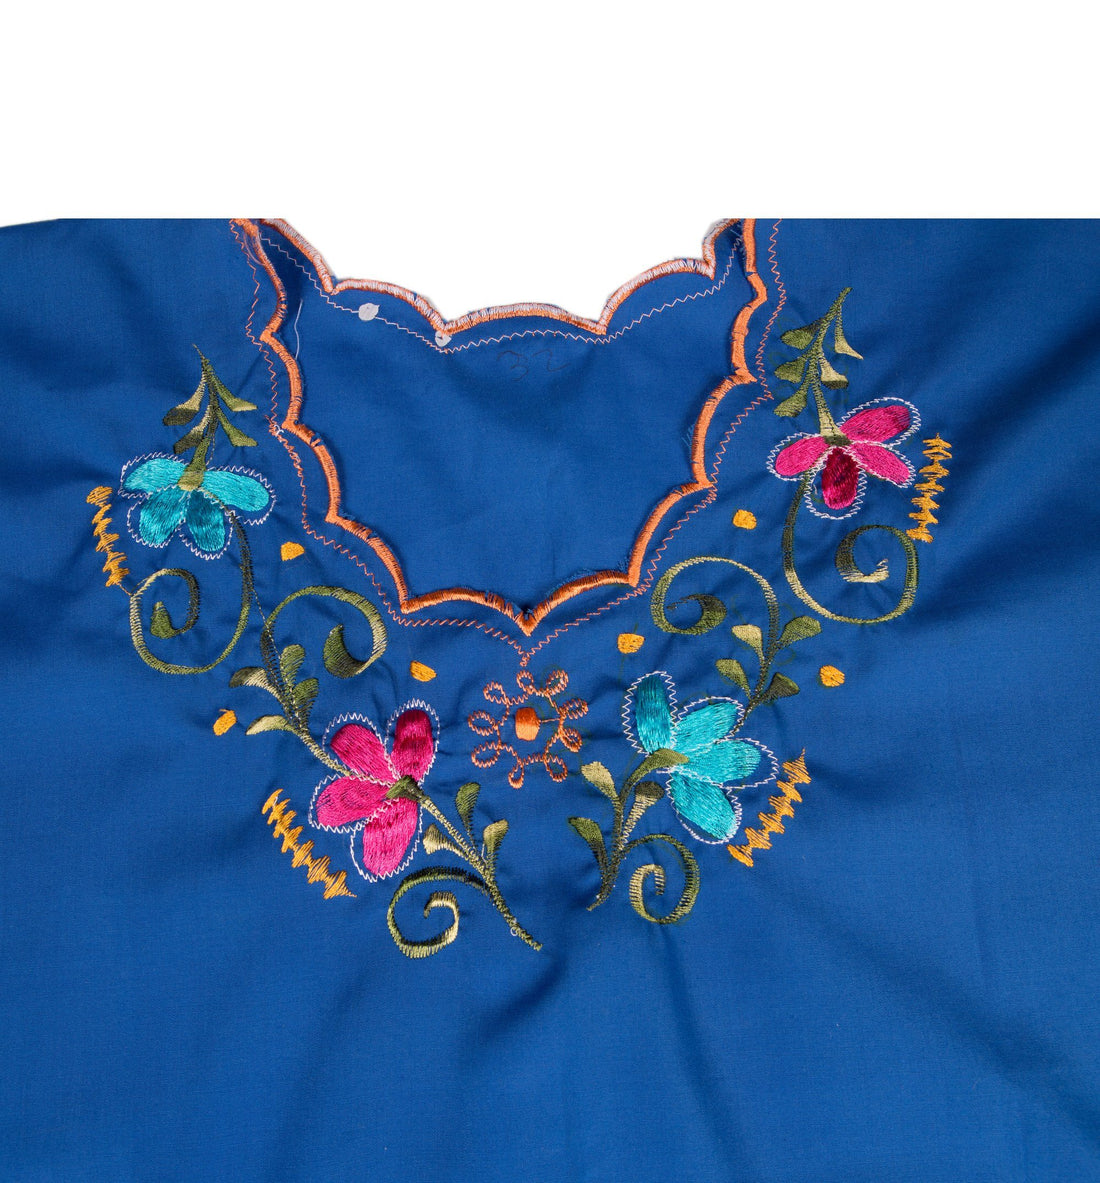 Vintage 70's Embroidered Blouse - Vintage - Iron and Resin